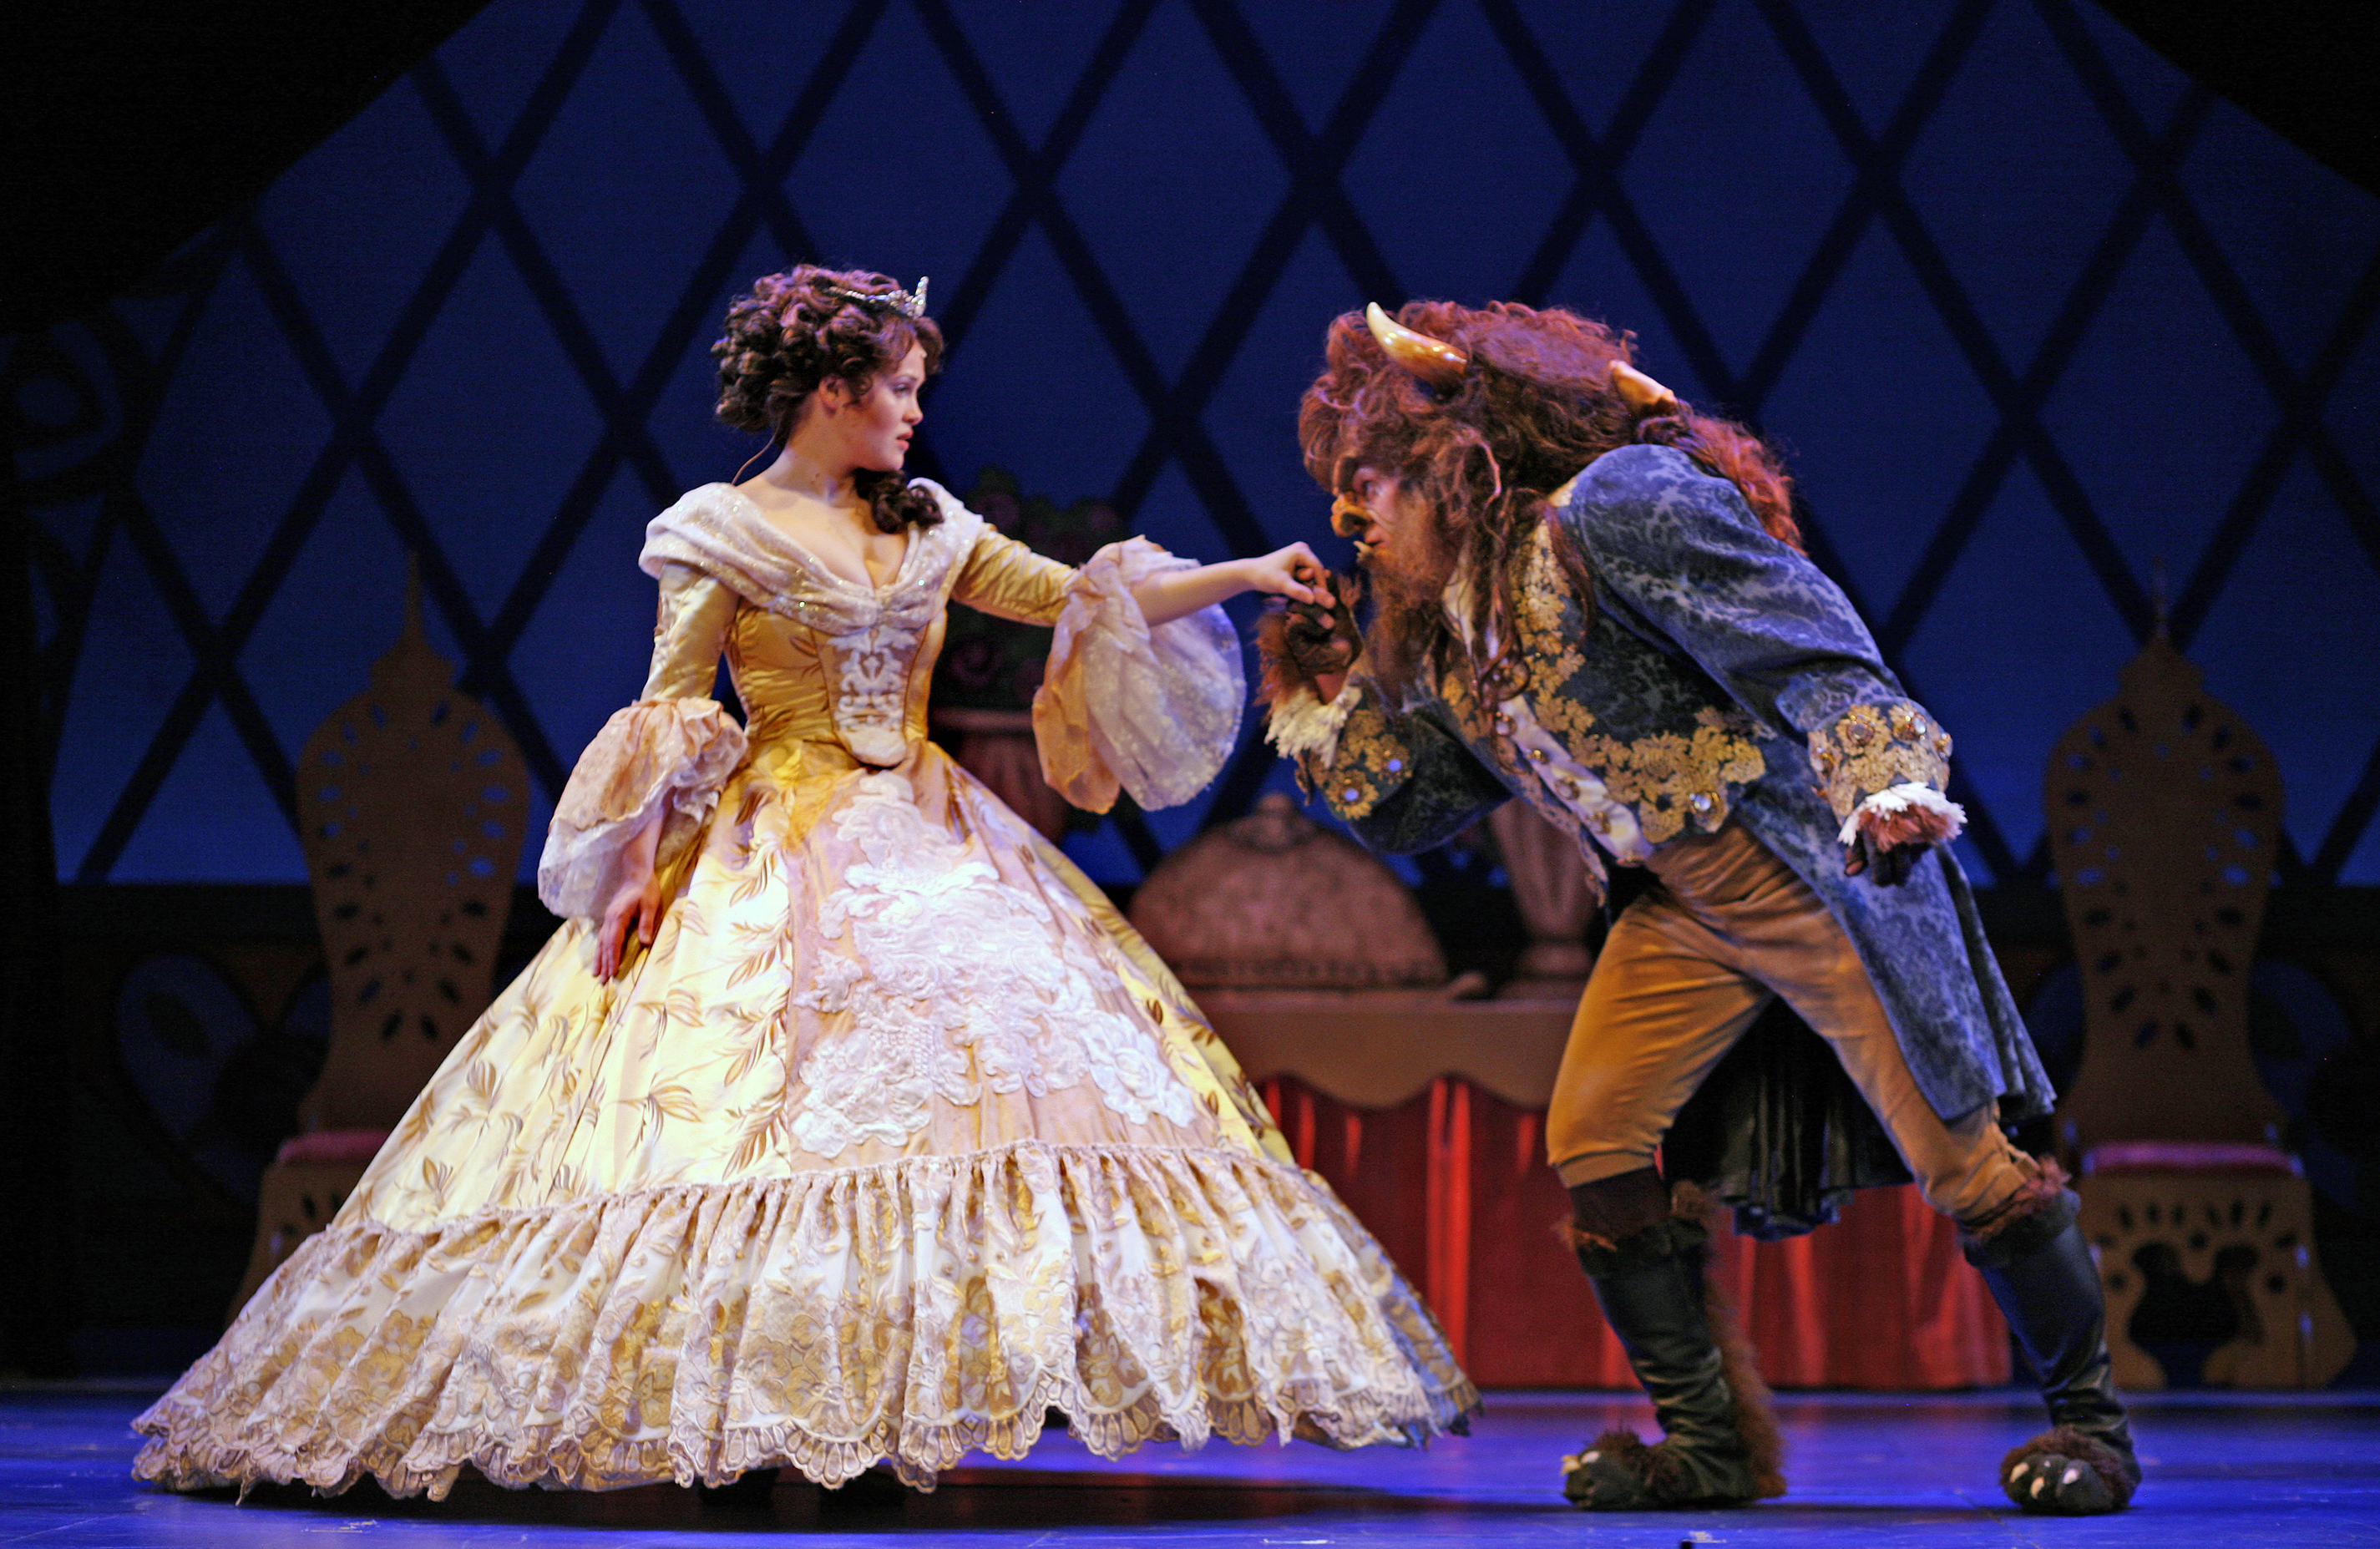 Beauty and the beast at montecasino iron horse casino wa